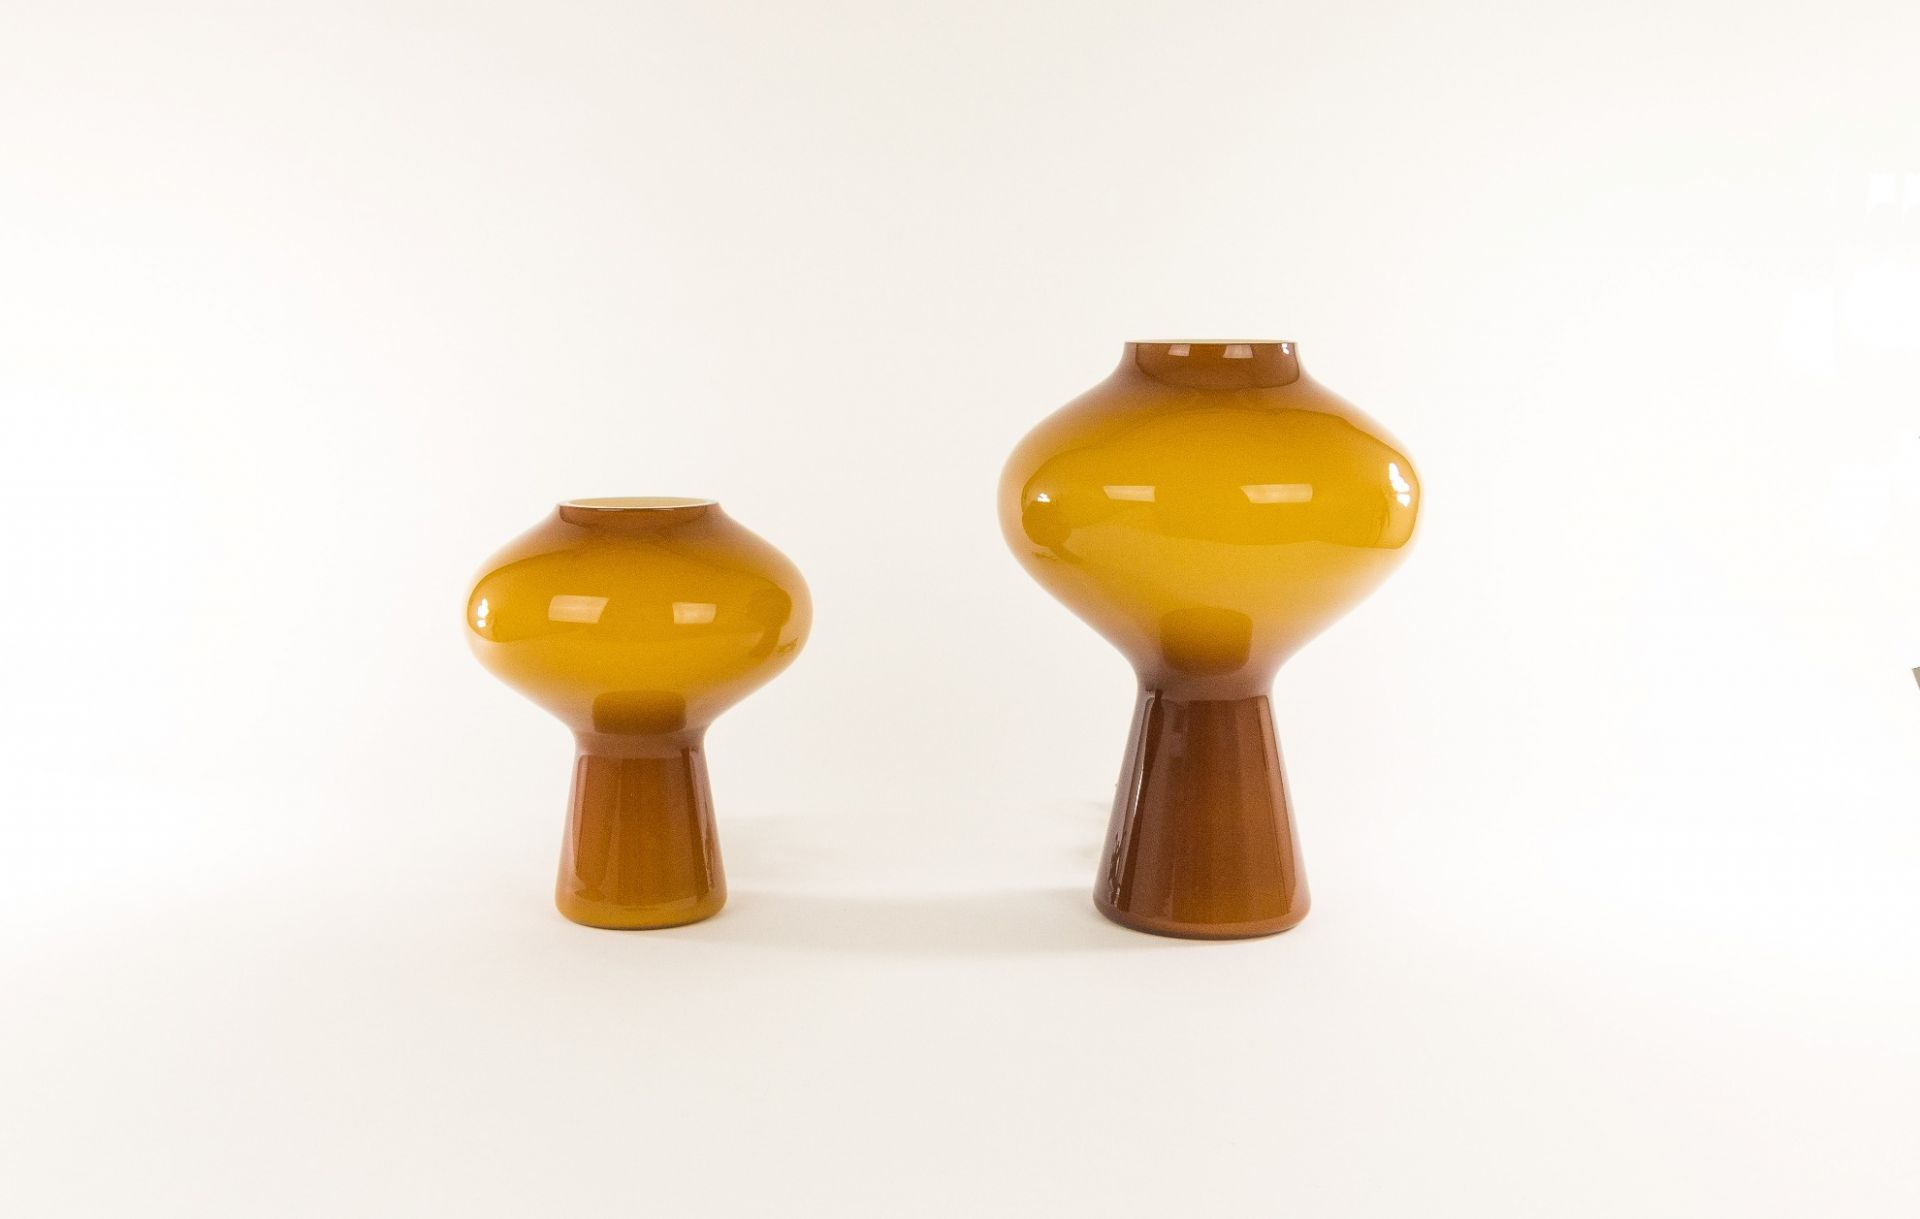 Amber hand-blown Fungo table lamp (large) by Massimo Vignelli for Venini, 1950s